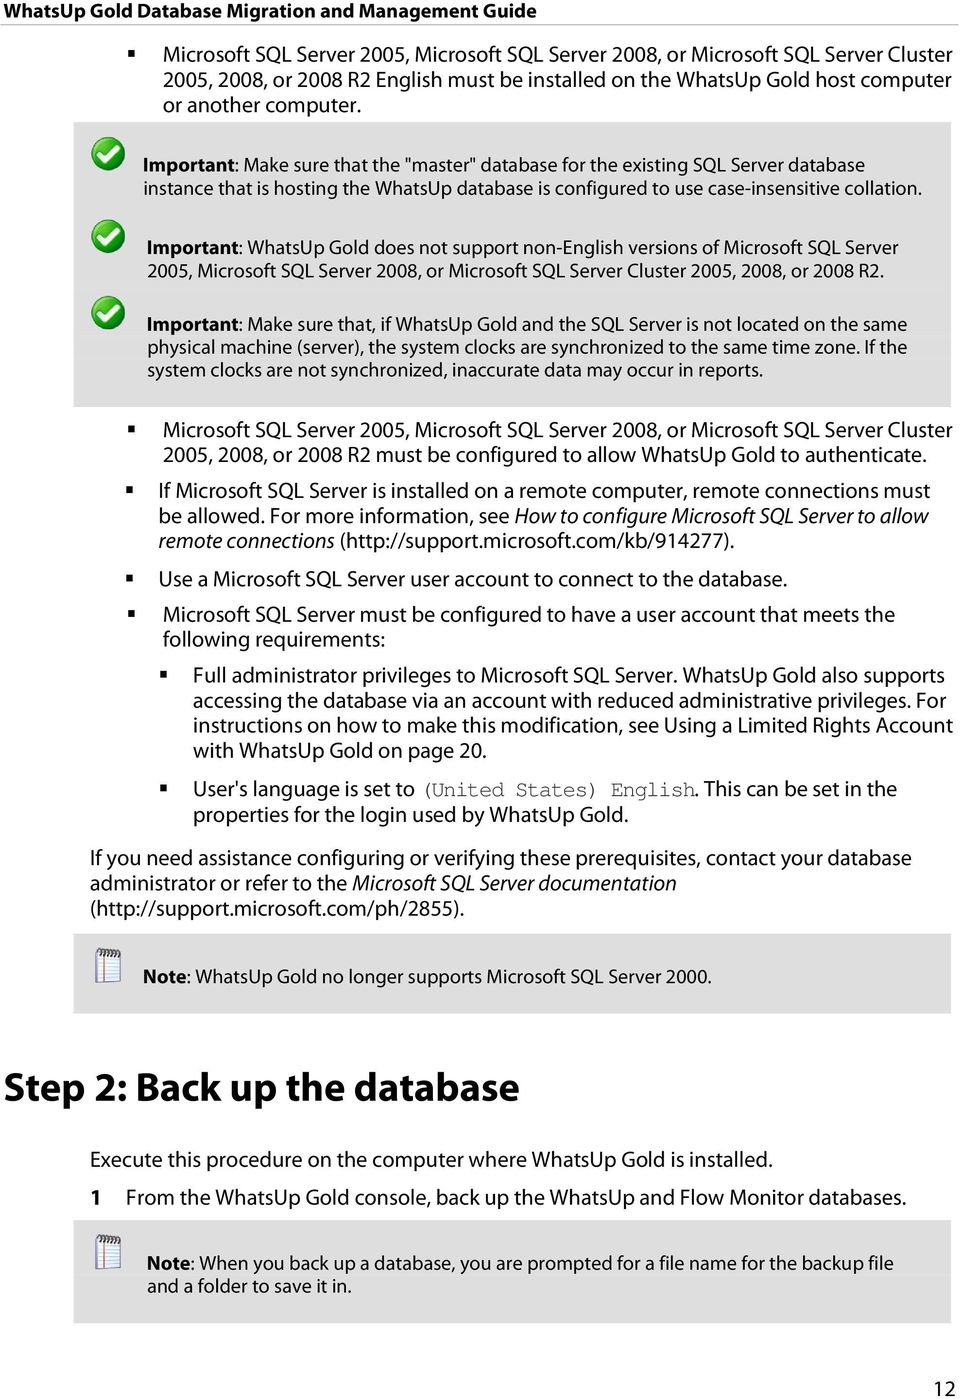 Important: WhatsUp Gold does not support non-english versions of Microsoft SQL Server 2005, Microsoft SQL Server 2008, or Microsoft SQL Server Cluster 2005, 2008, or 2008 R2.